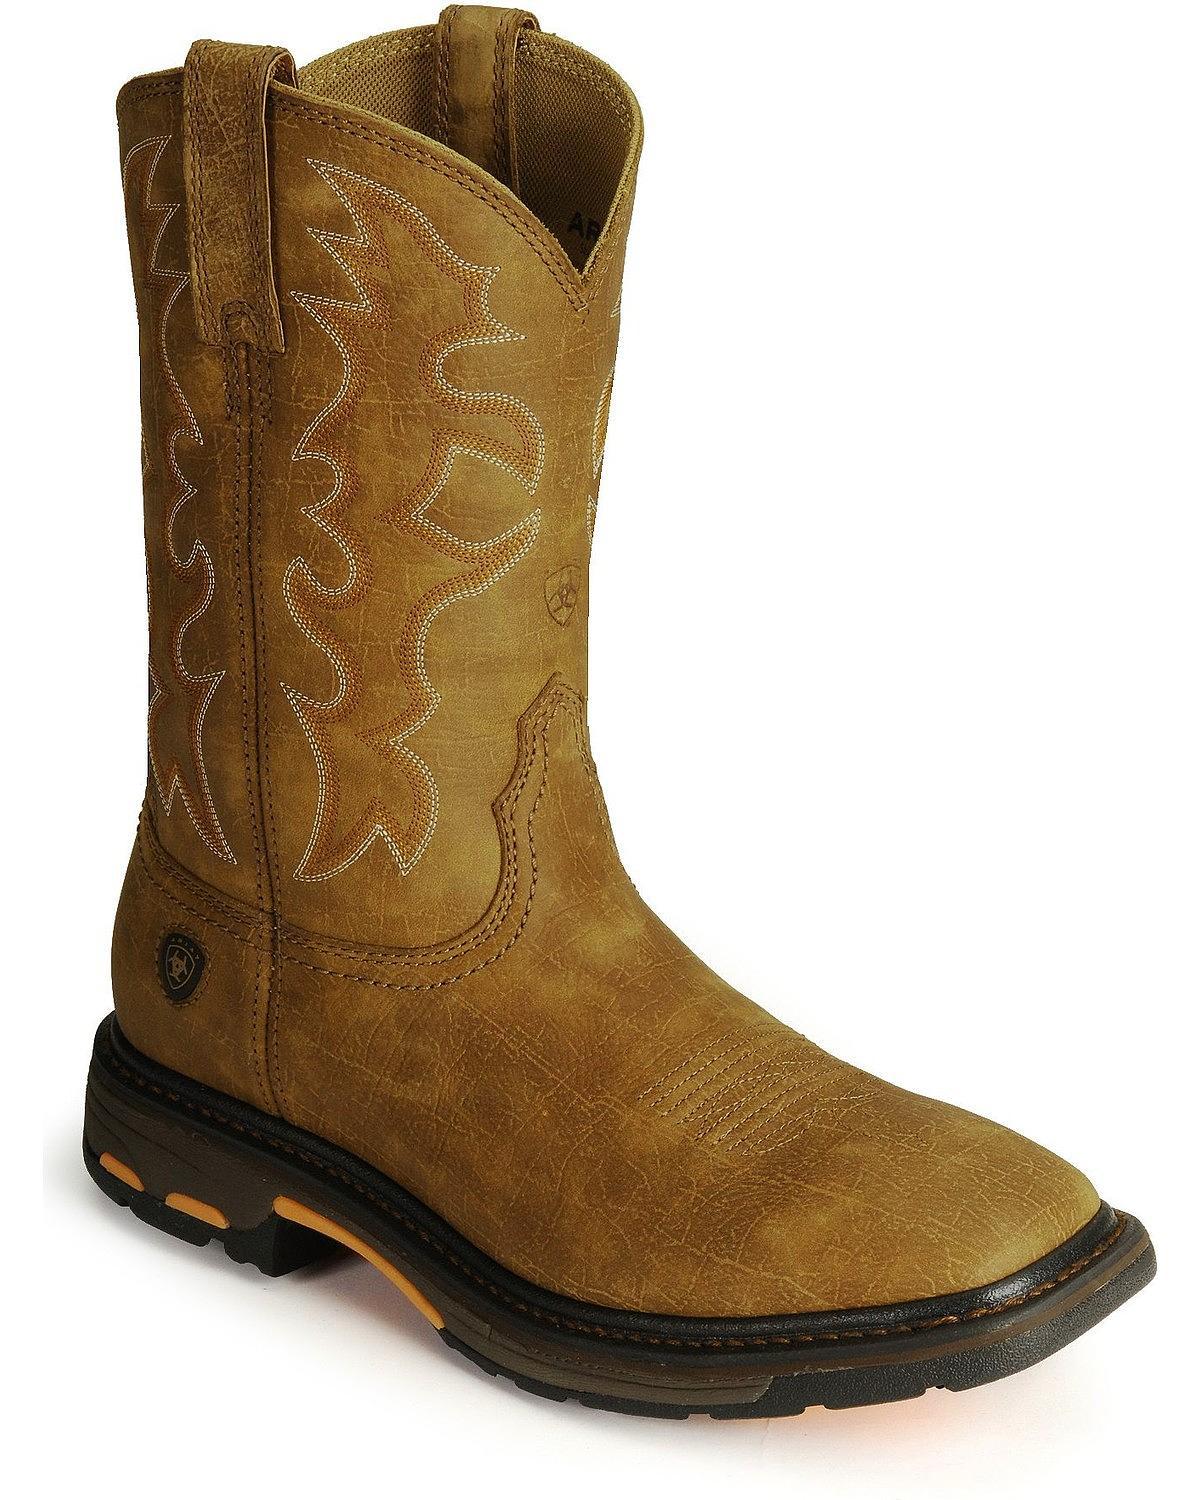 With over 3, styles and 2,, pairs of men's cowboy boots to pull from, hereifilessl.ga has one of the largest selections of western and cowboy boots, anywhere.